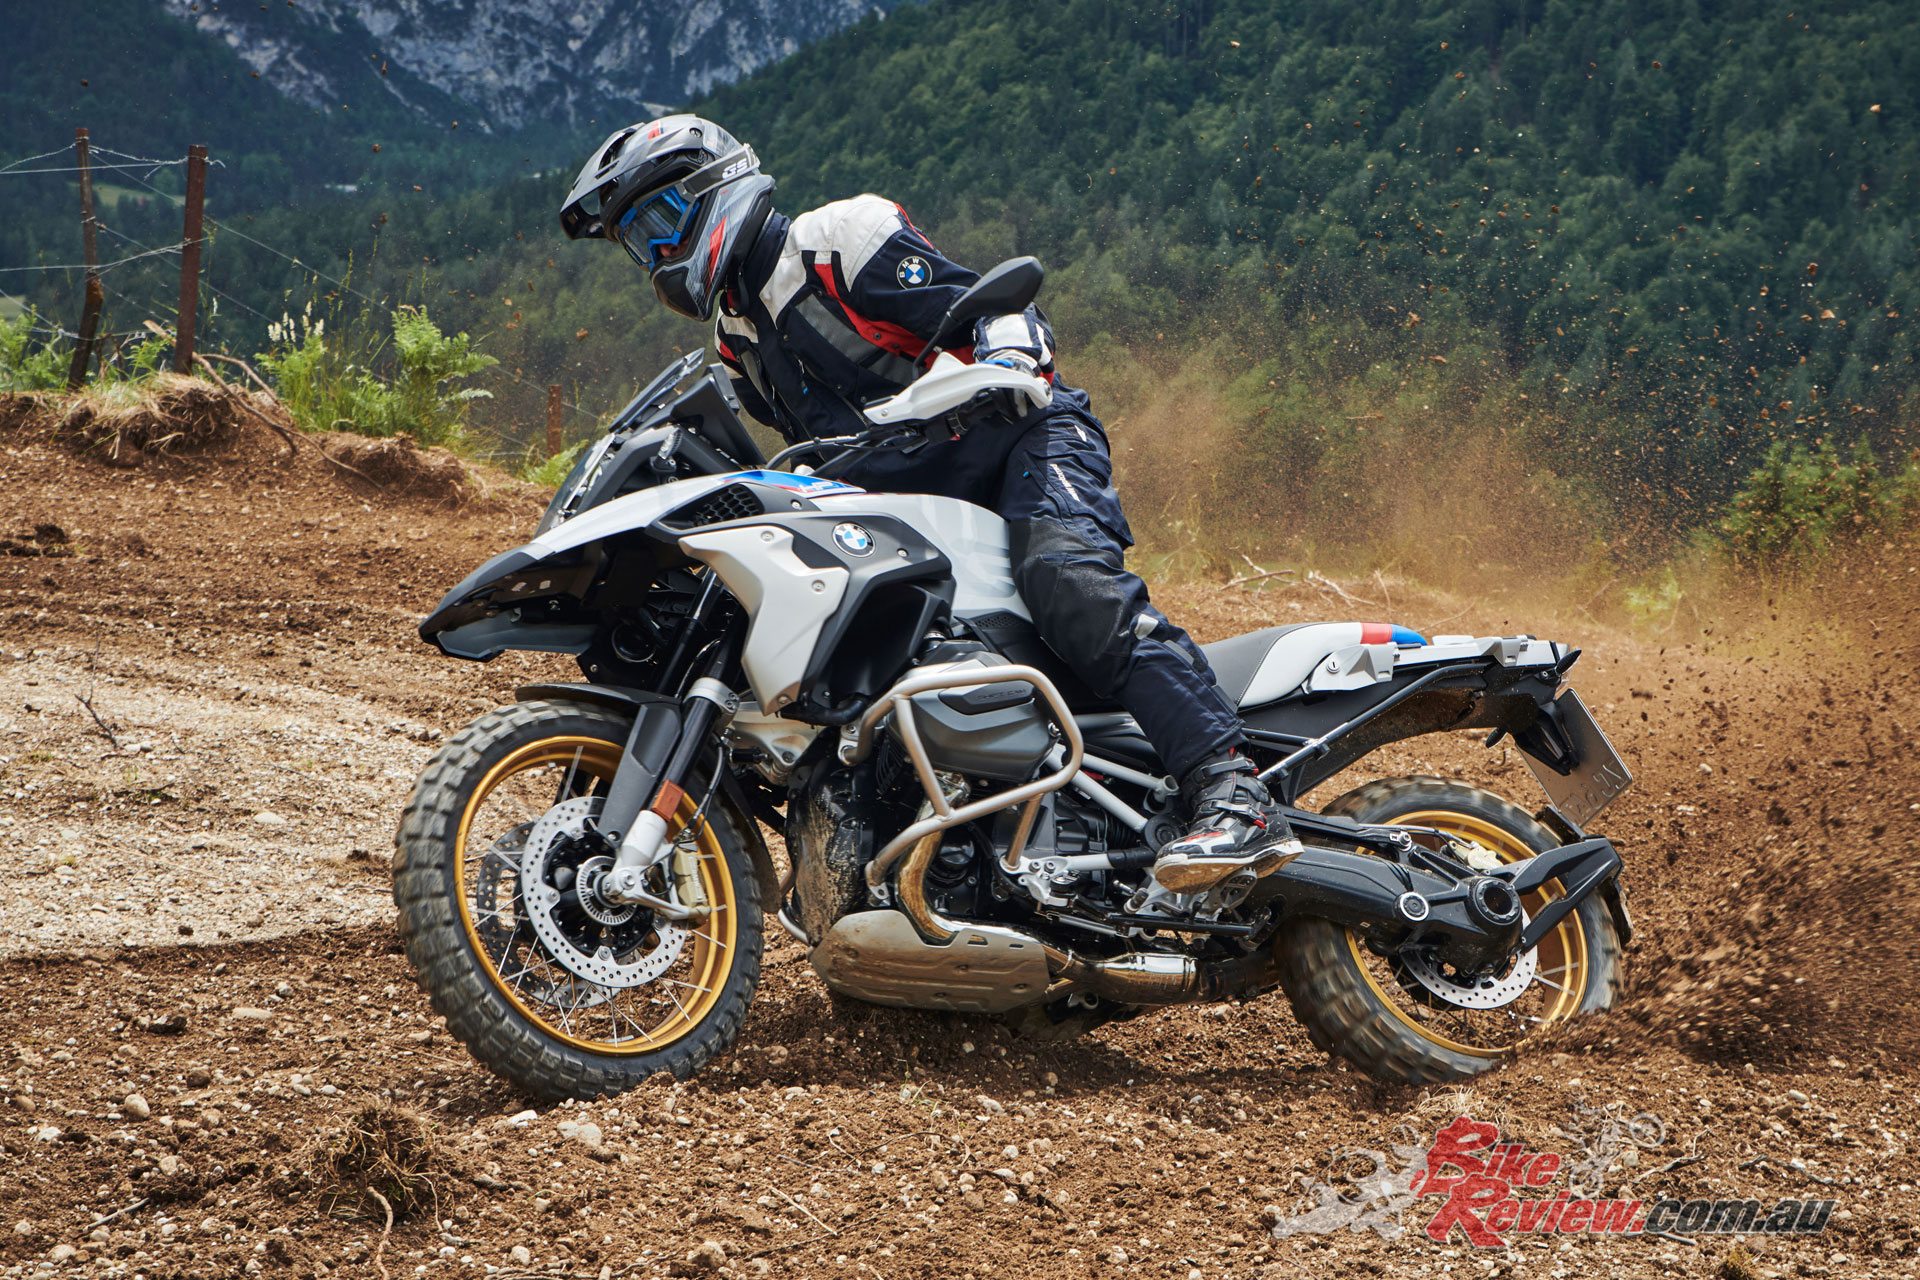 bmw announce 2019 r 1250 pricing bike review. Black Bedroom Furniture Sets. Home Design Ideas